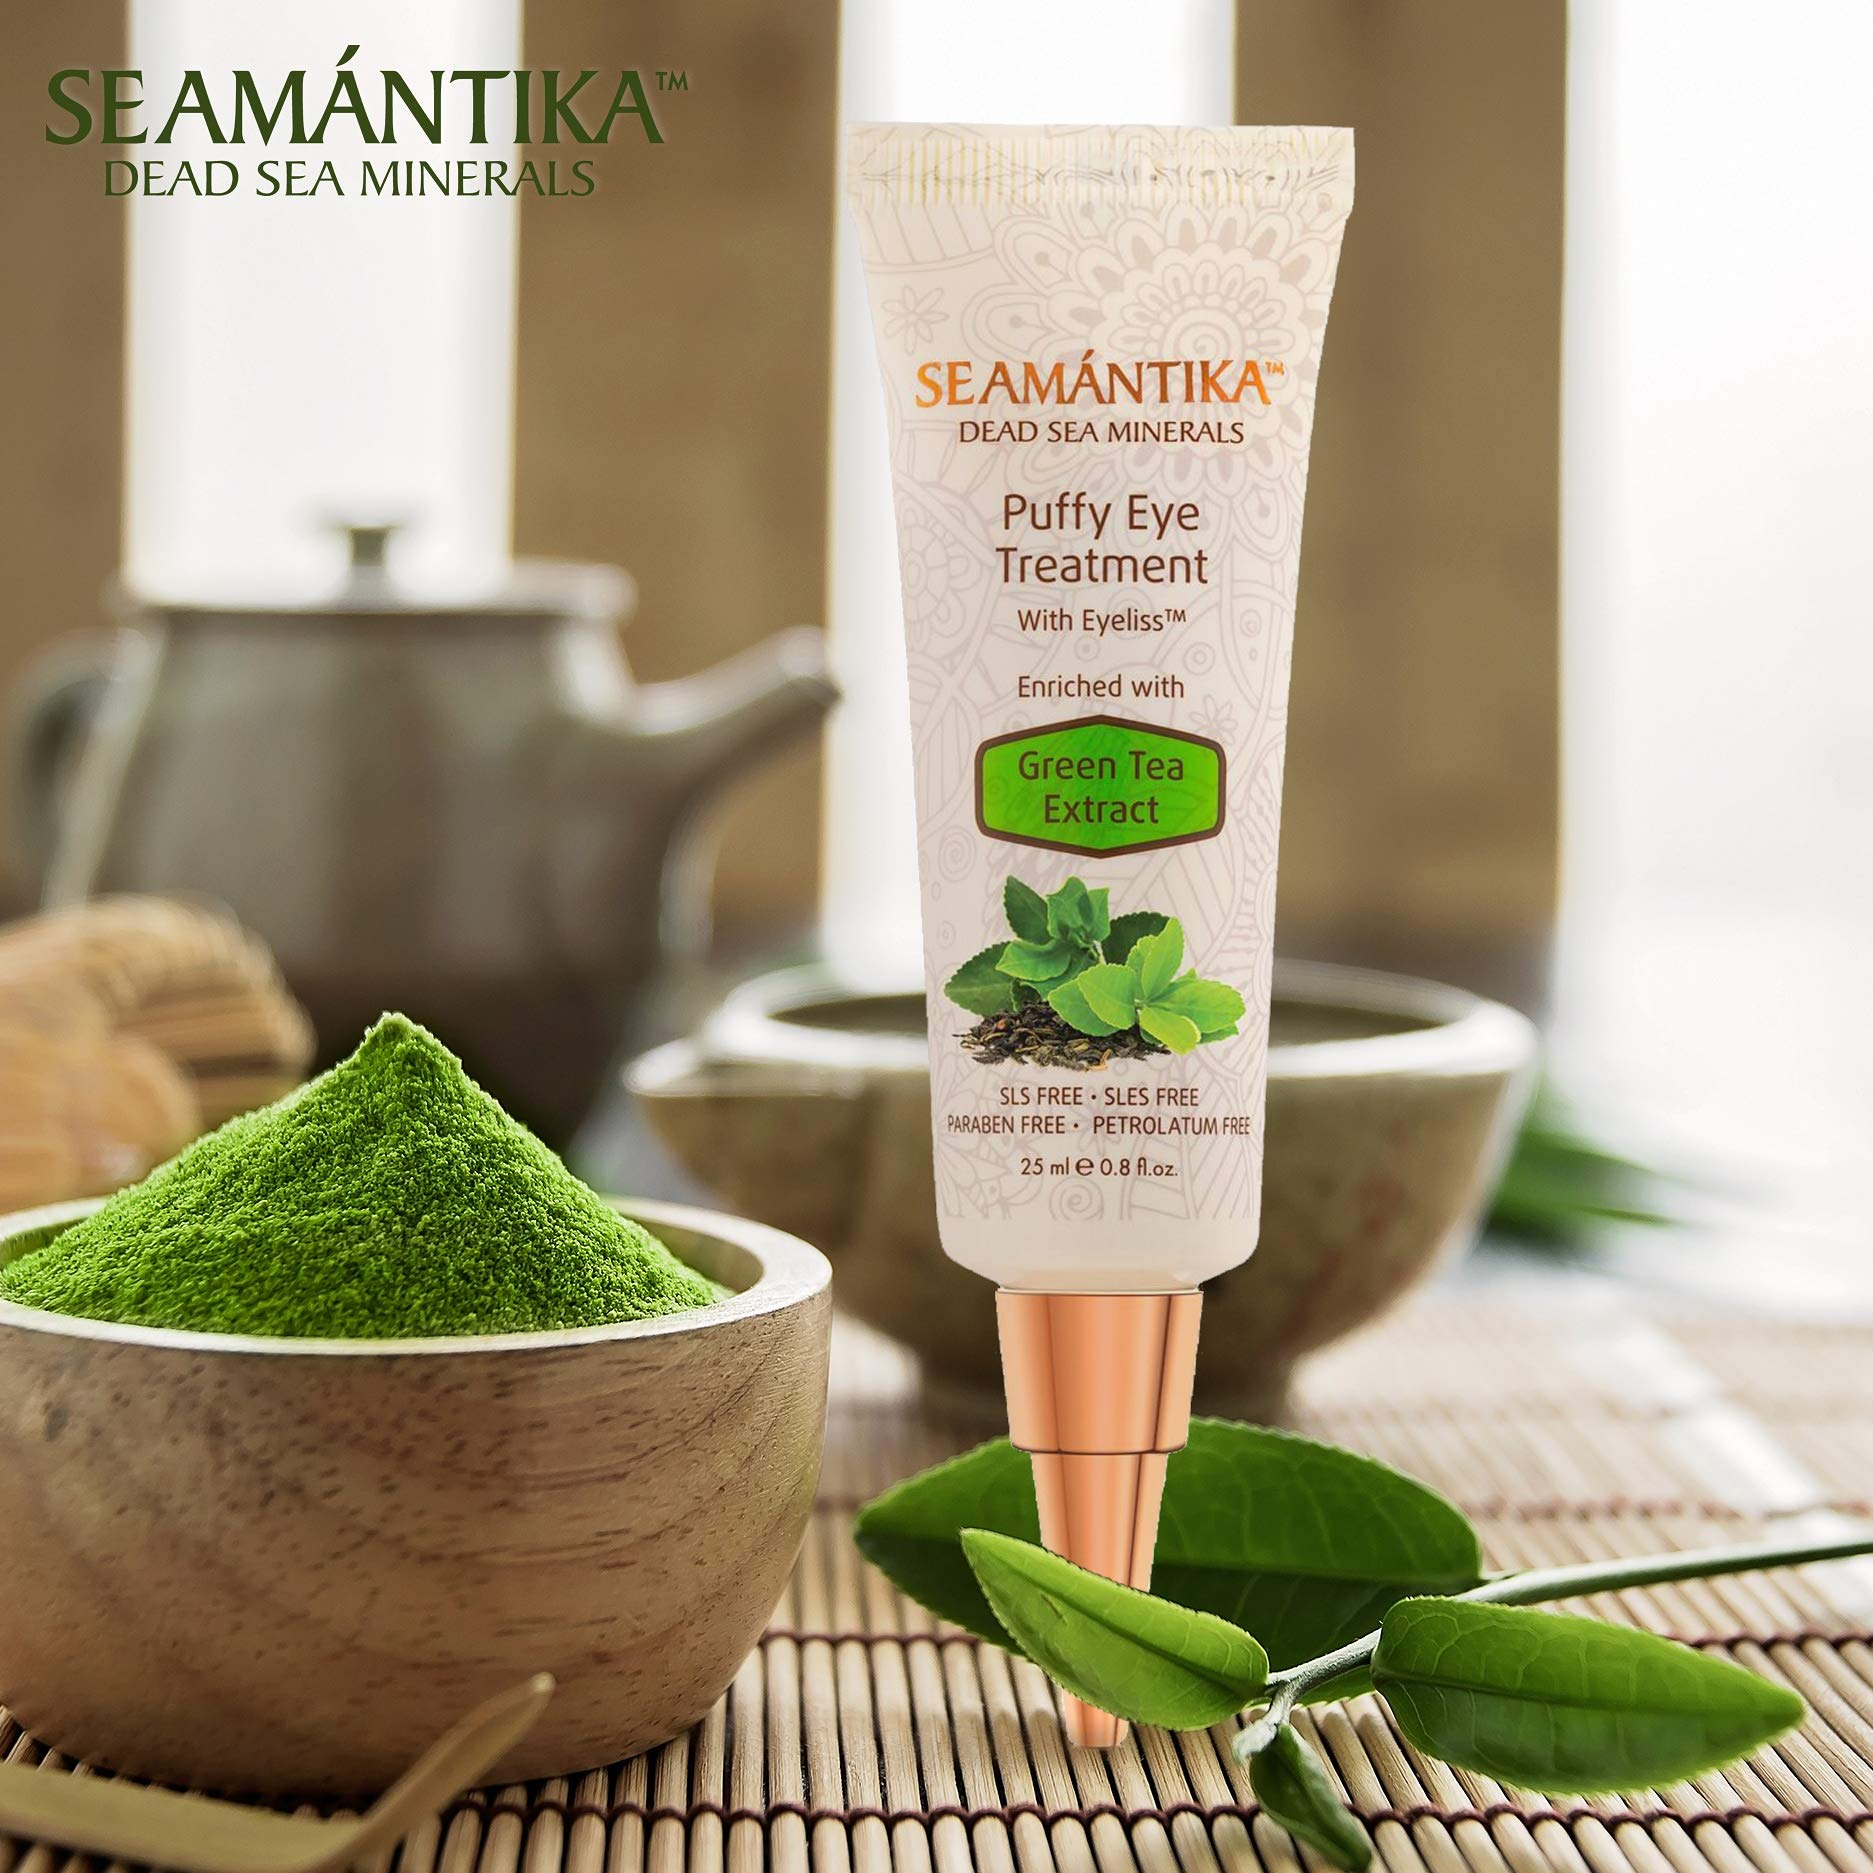 Puffy Eye Treatment Instant results – Naturally Eliminate Wrinkles, Puffiness, Dark Circle and Bags in Minutes – Hydrating Eye Cream w/Green Tea Extract, Dead Sea Minerals by SEAMANTIKA – .8 oz by SEAMANTIKA (Image #9)